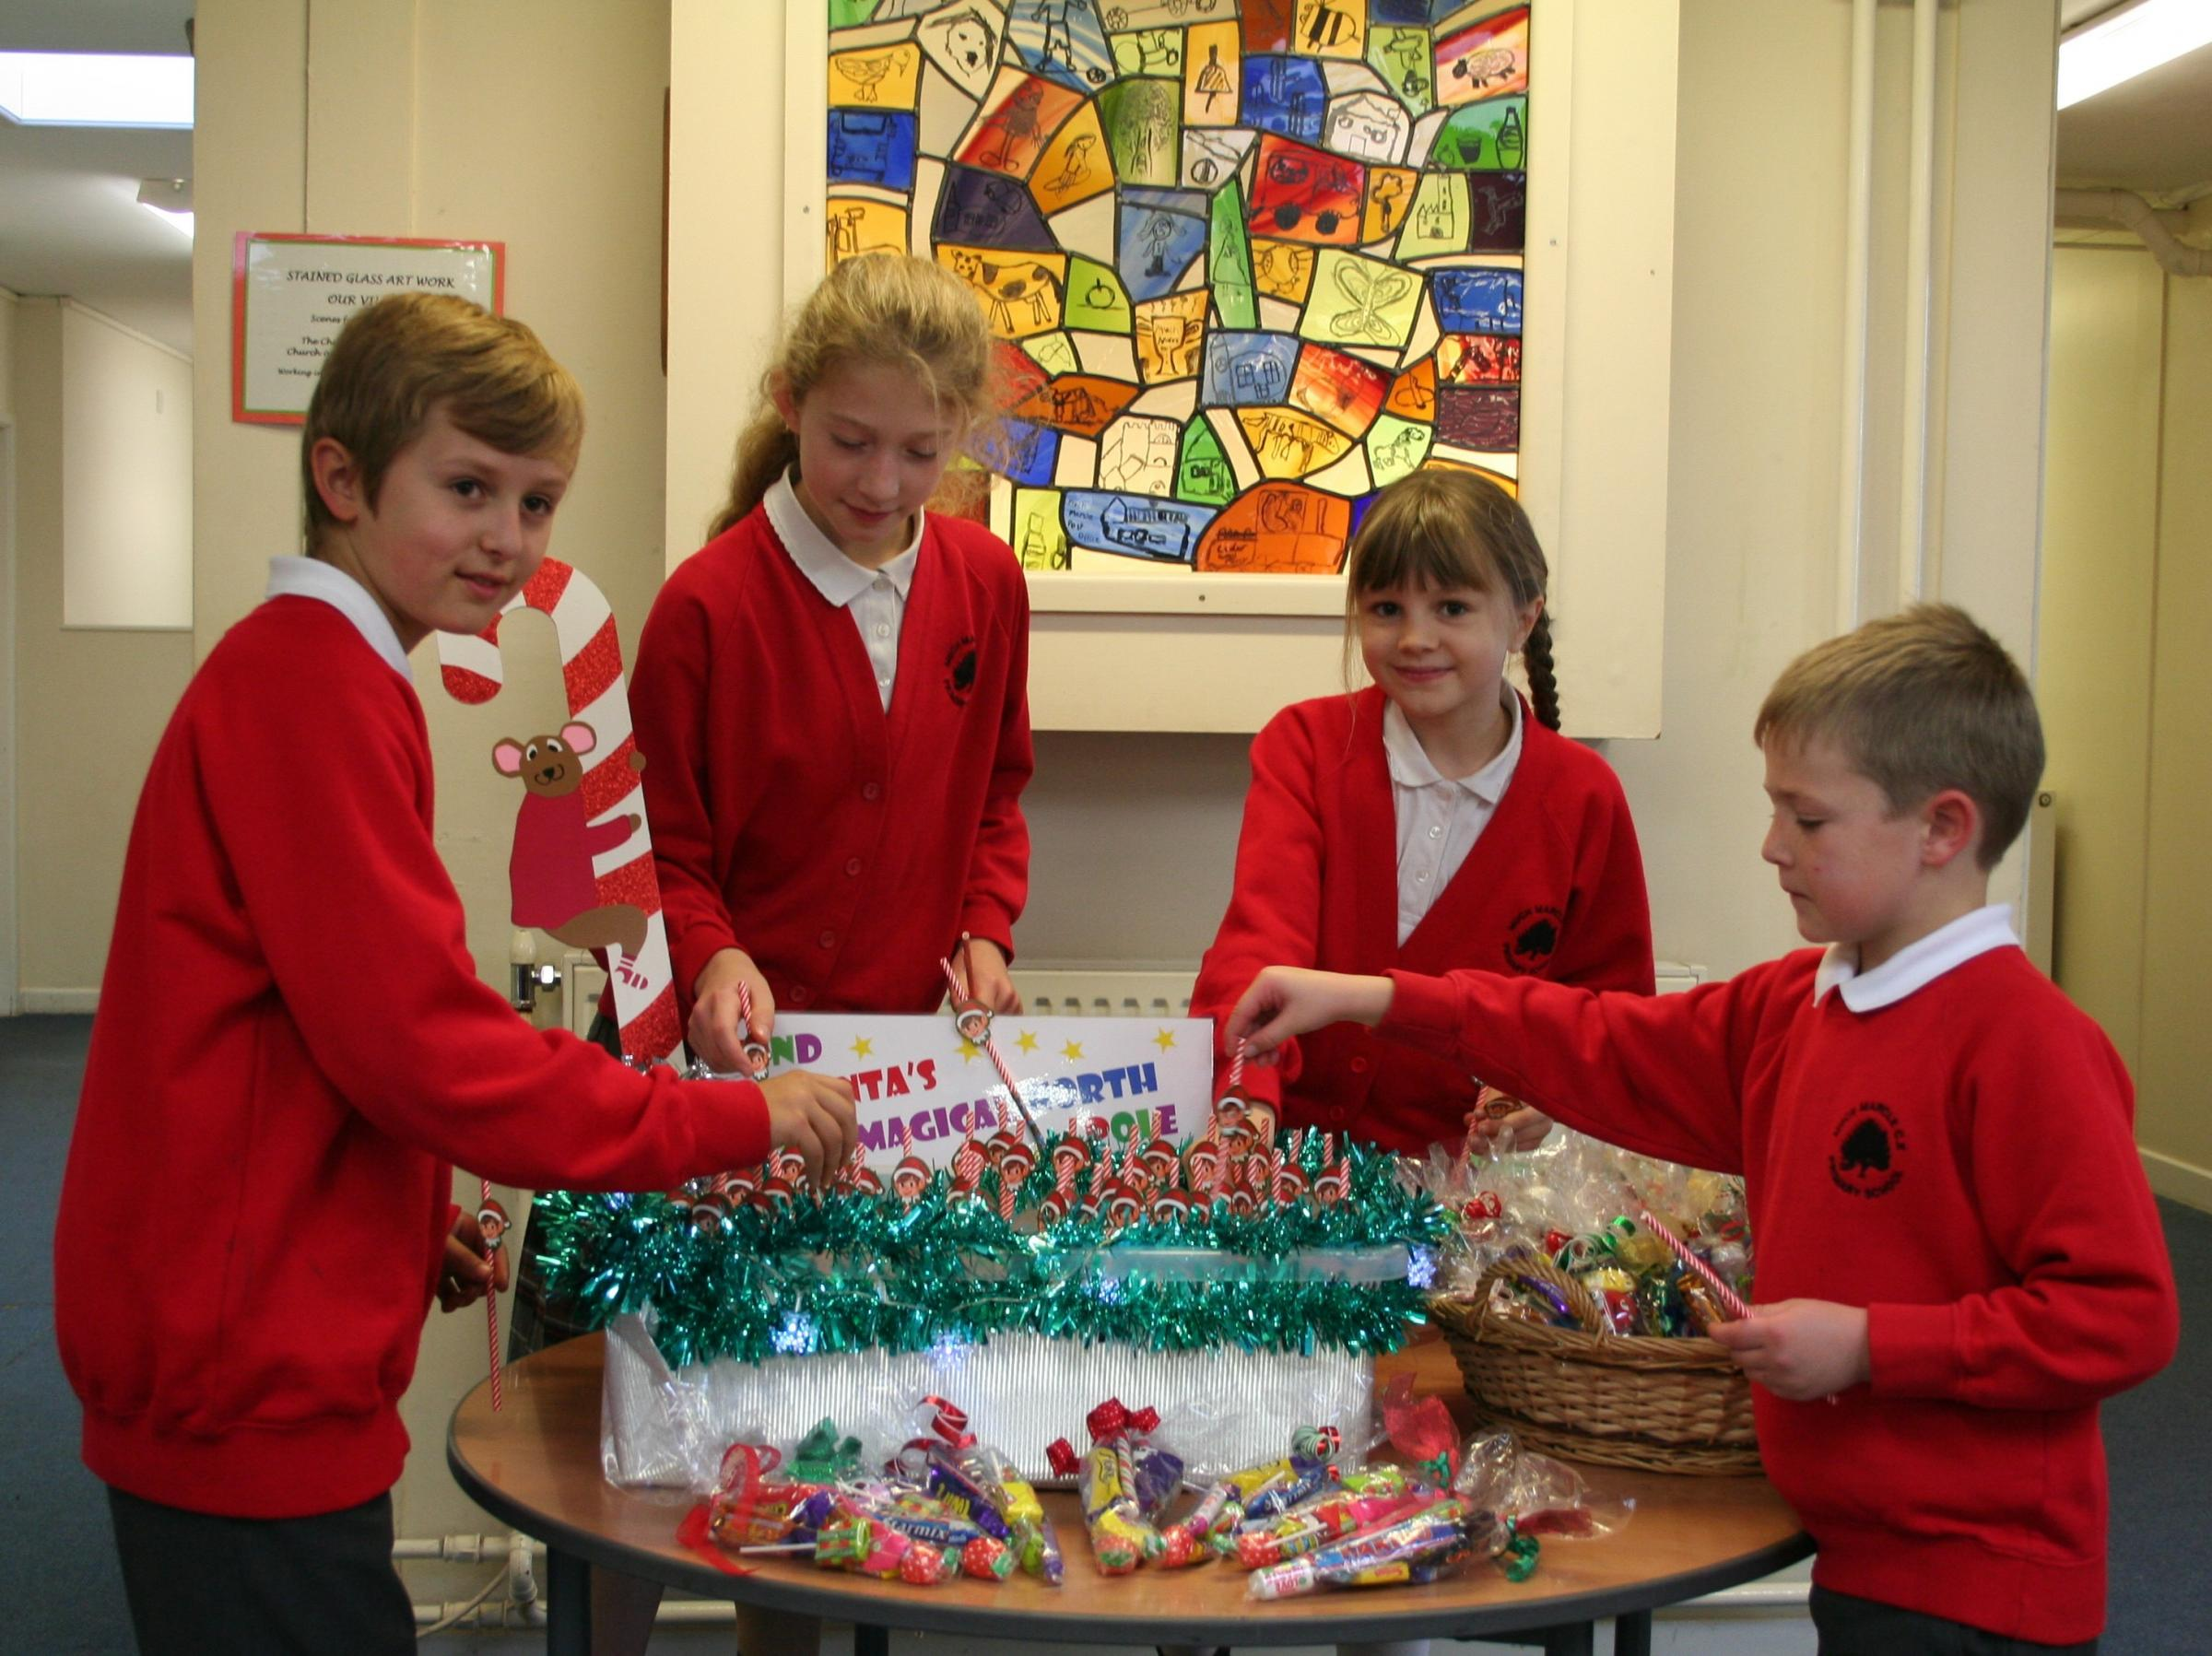 EXCITED: Much Marcle Primary children get ready for a festive fayre